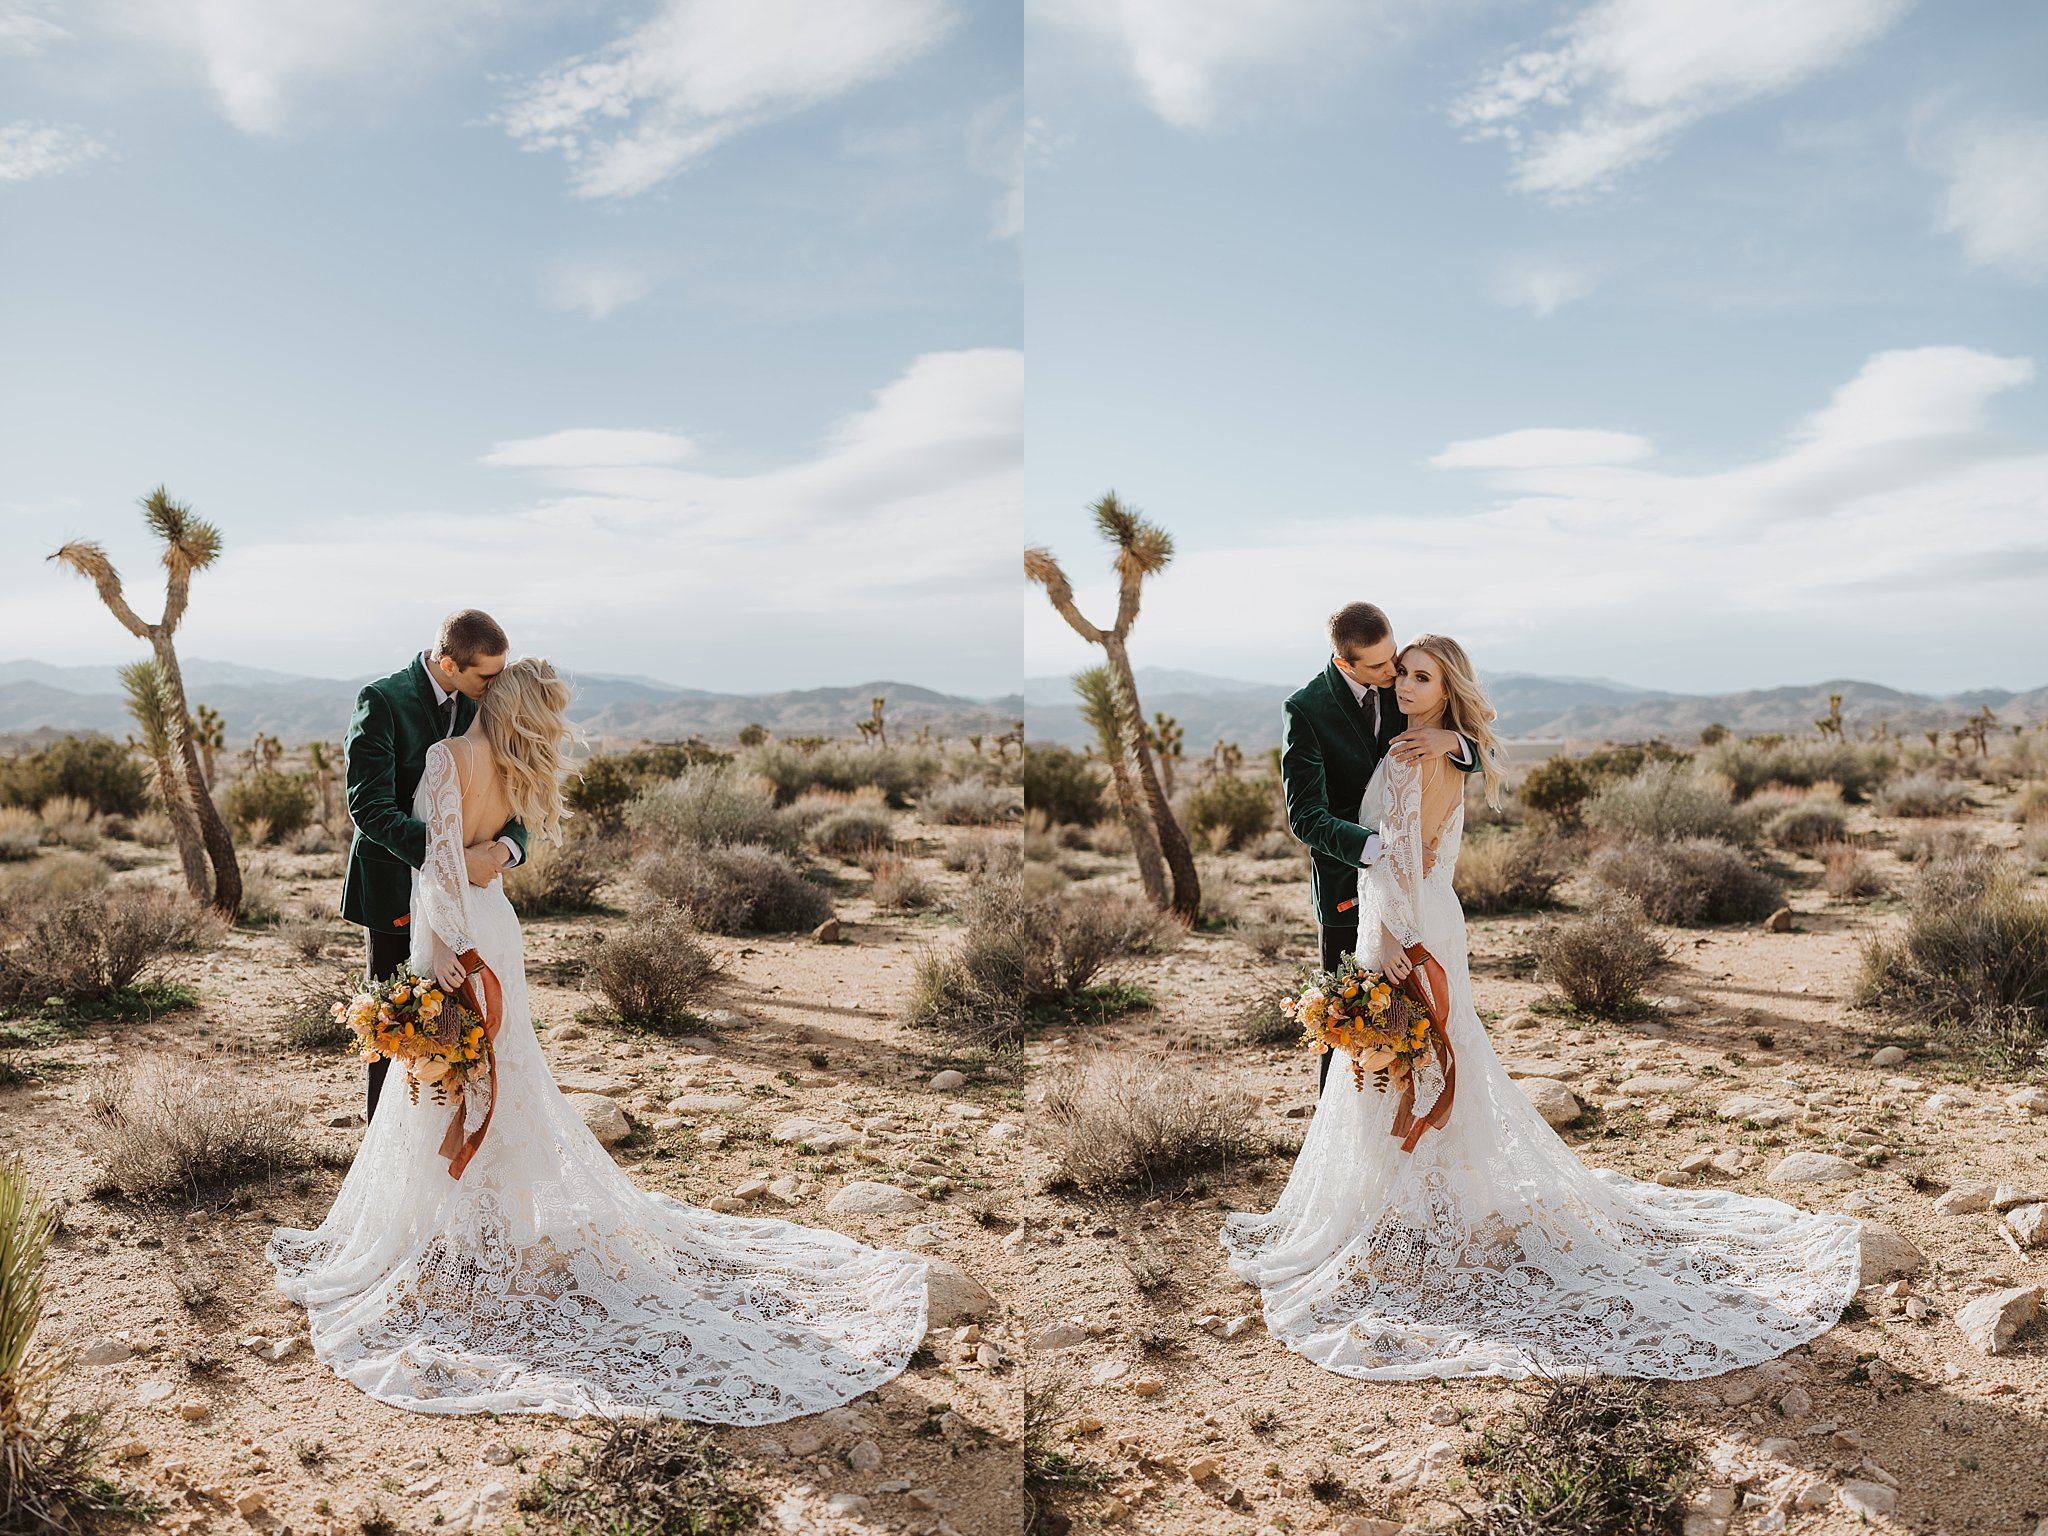 Meg's Marvels Photography - Joshua Tree Elopement California Wedding_0176.jpg